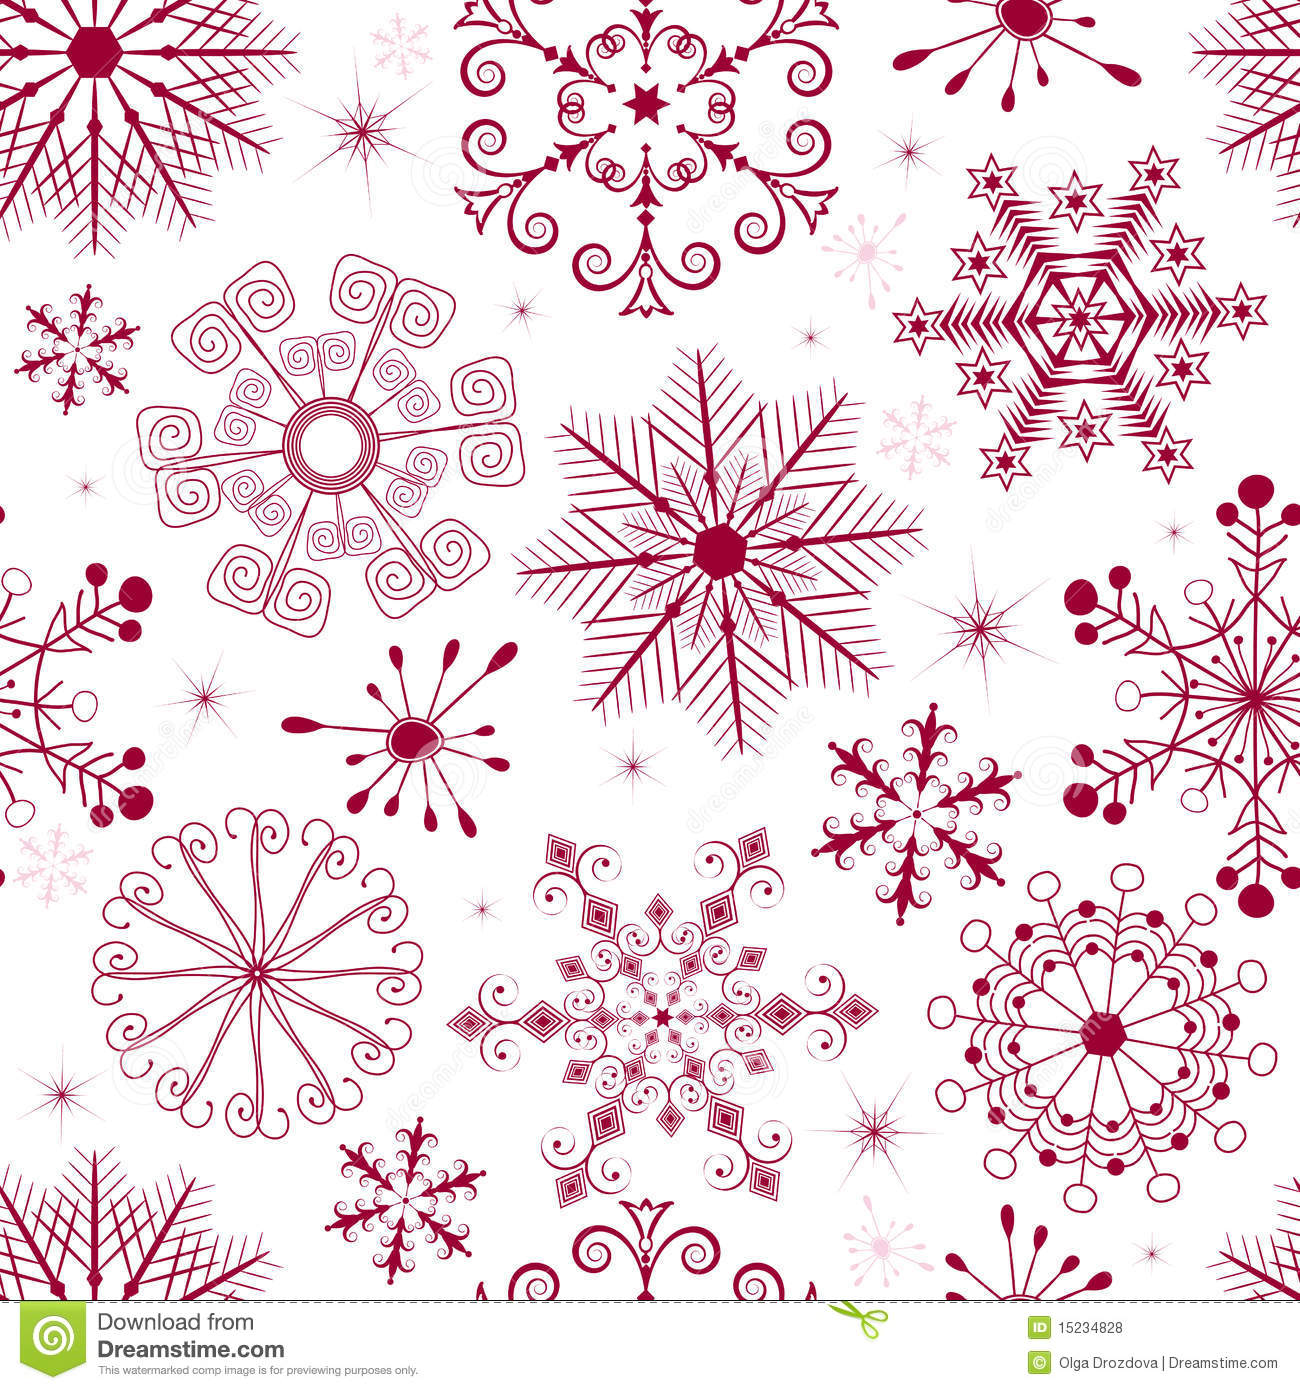 Seamless white christmas pattern with red and pink snowflakes.